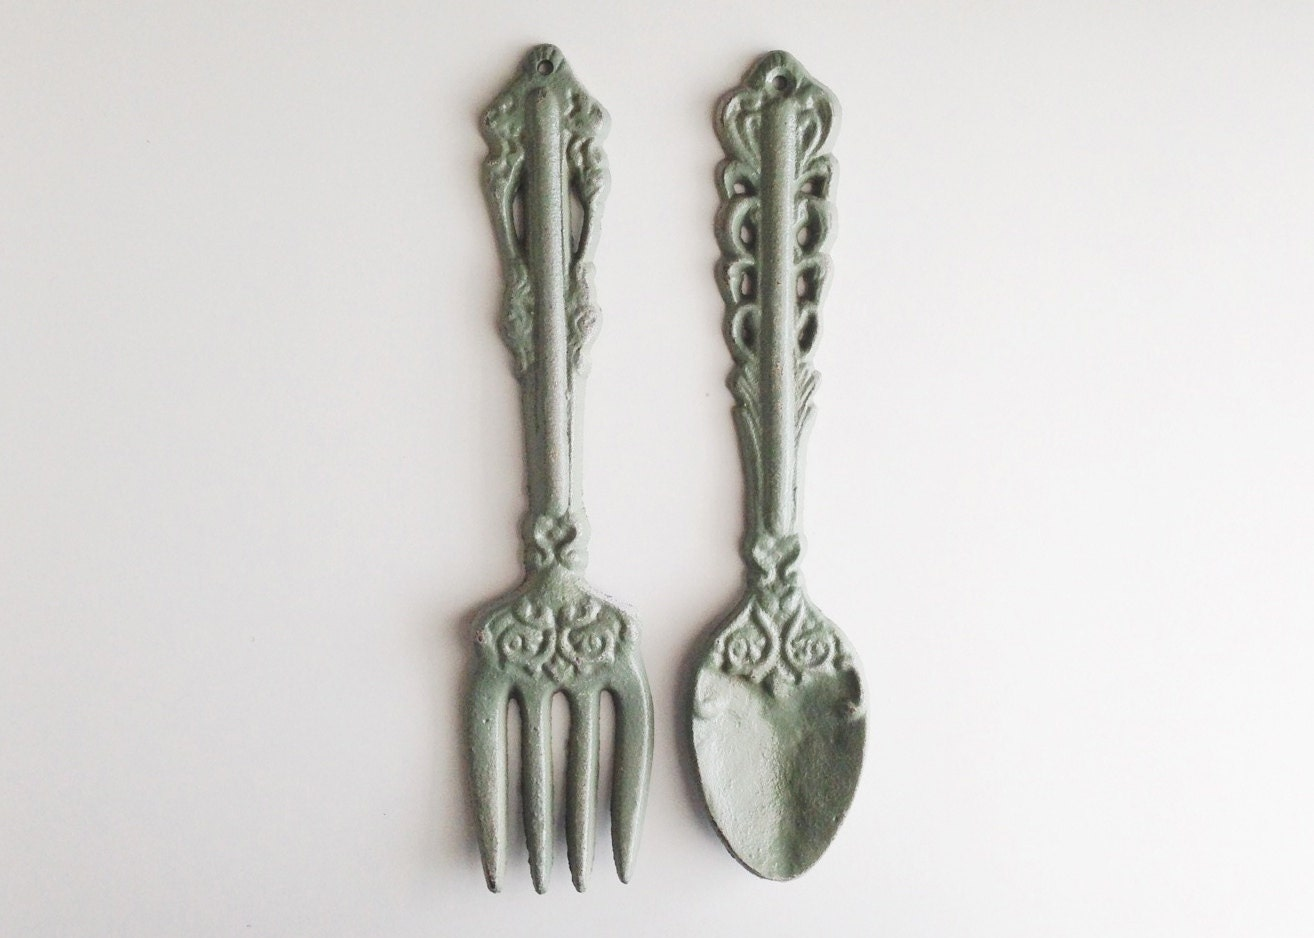 large fork and spoon green fork wall decor sage by. Black Bedroom Furniture Sets. Home Design Ideas